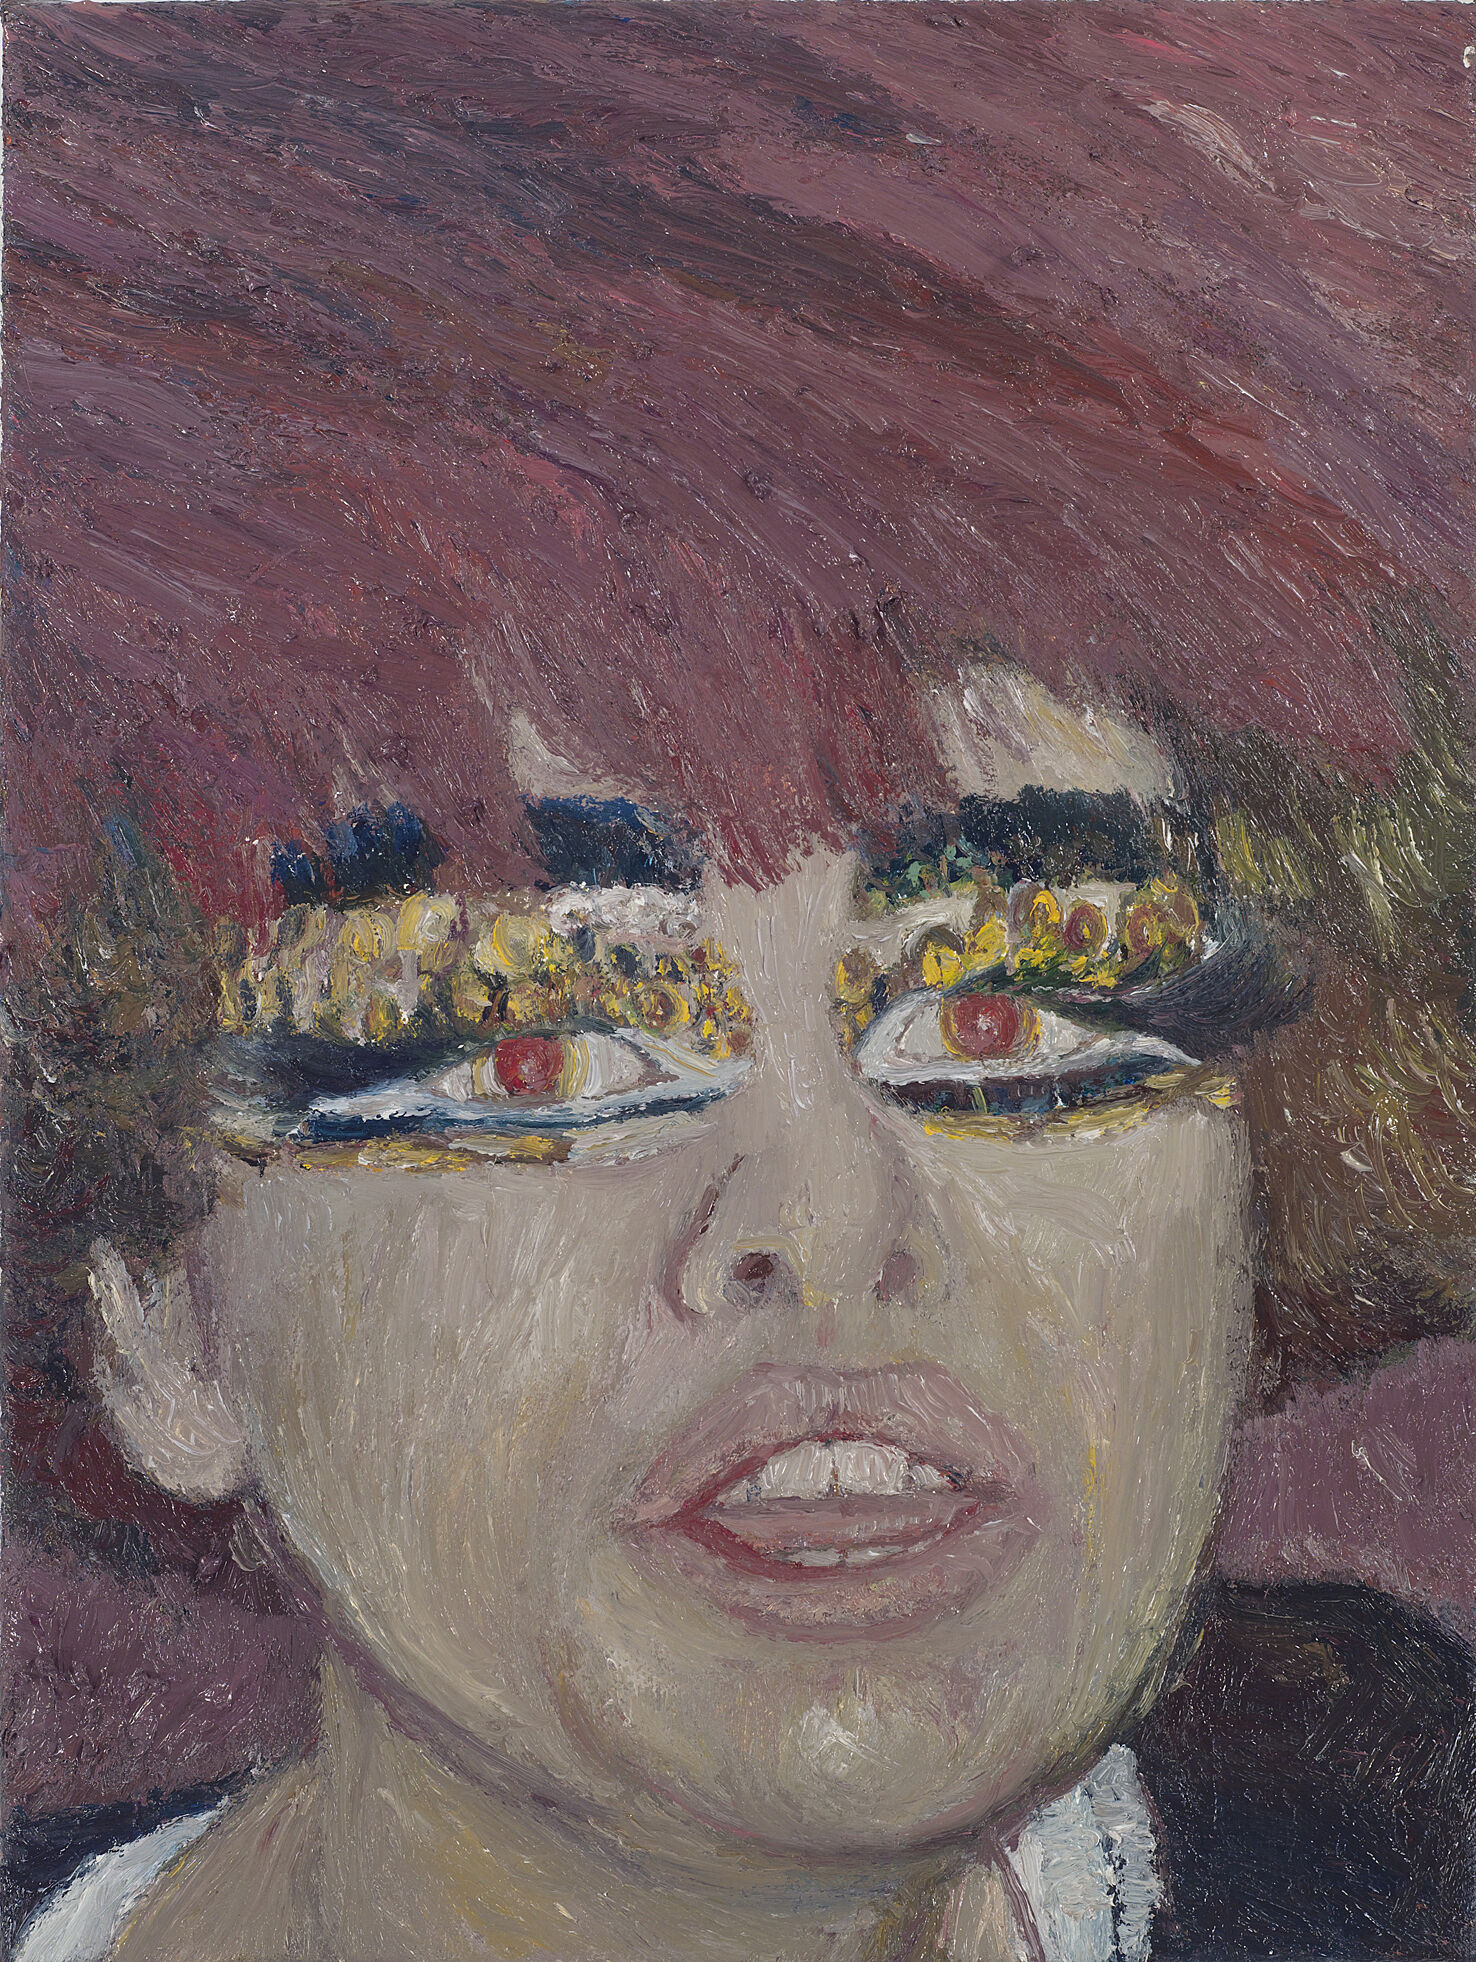 A painting of a woman with dramatic makeup.